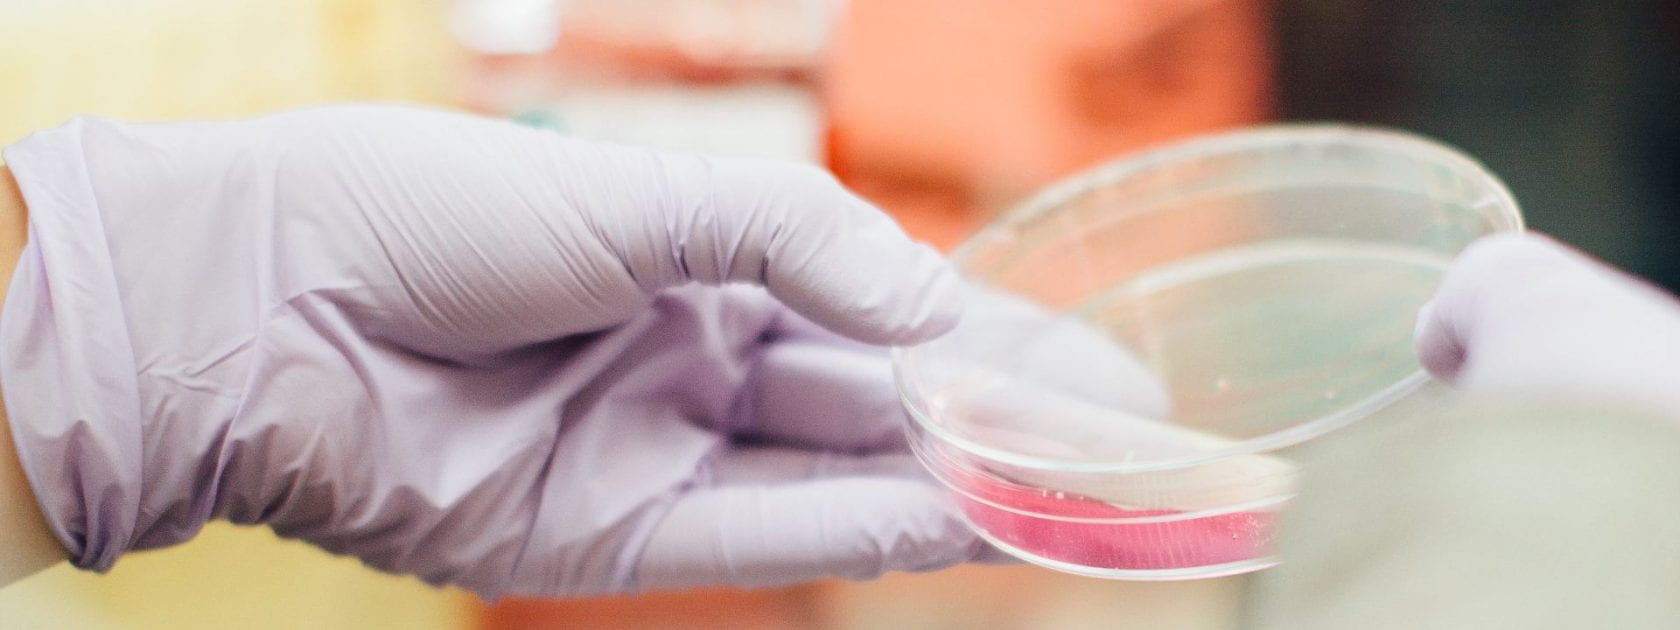 hands with purple gloved holding a petri dish